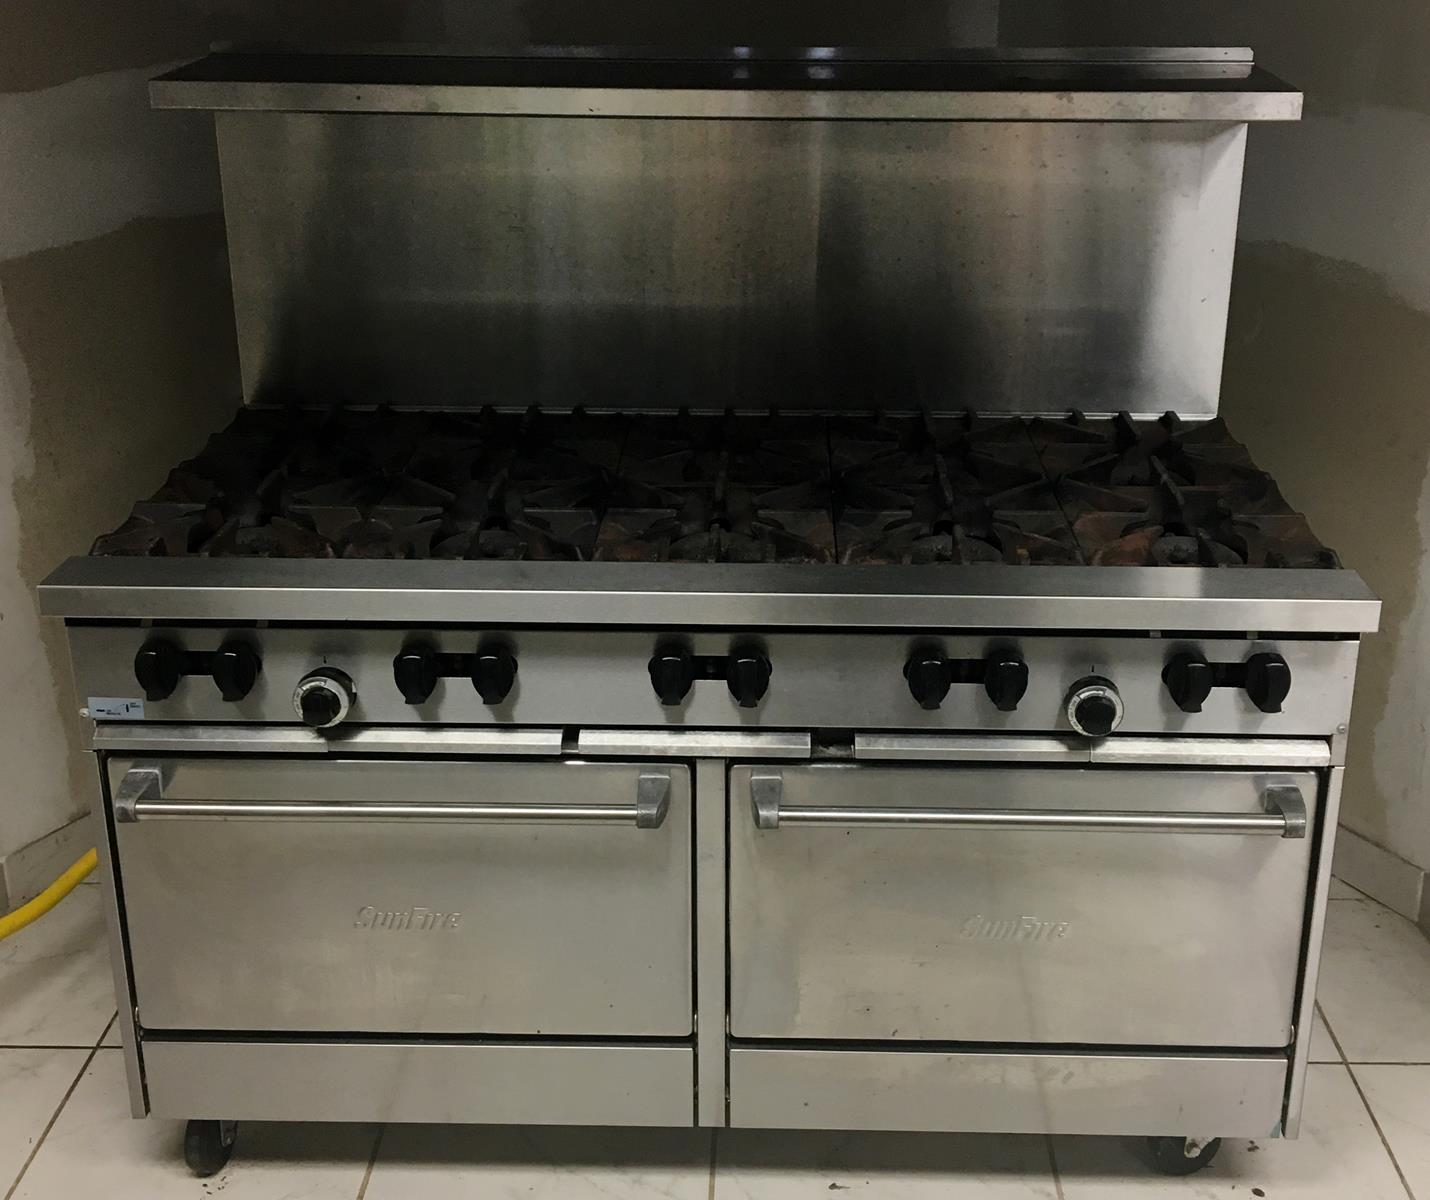 Garland Sunfire Commercial Stainless Steel 10 Burner Gas Range / Double Oven